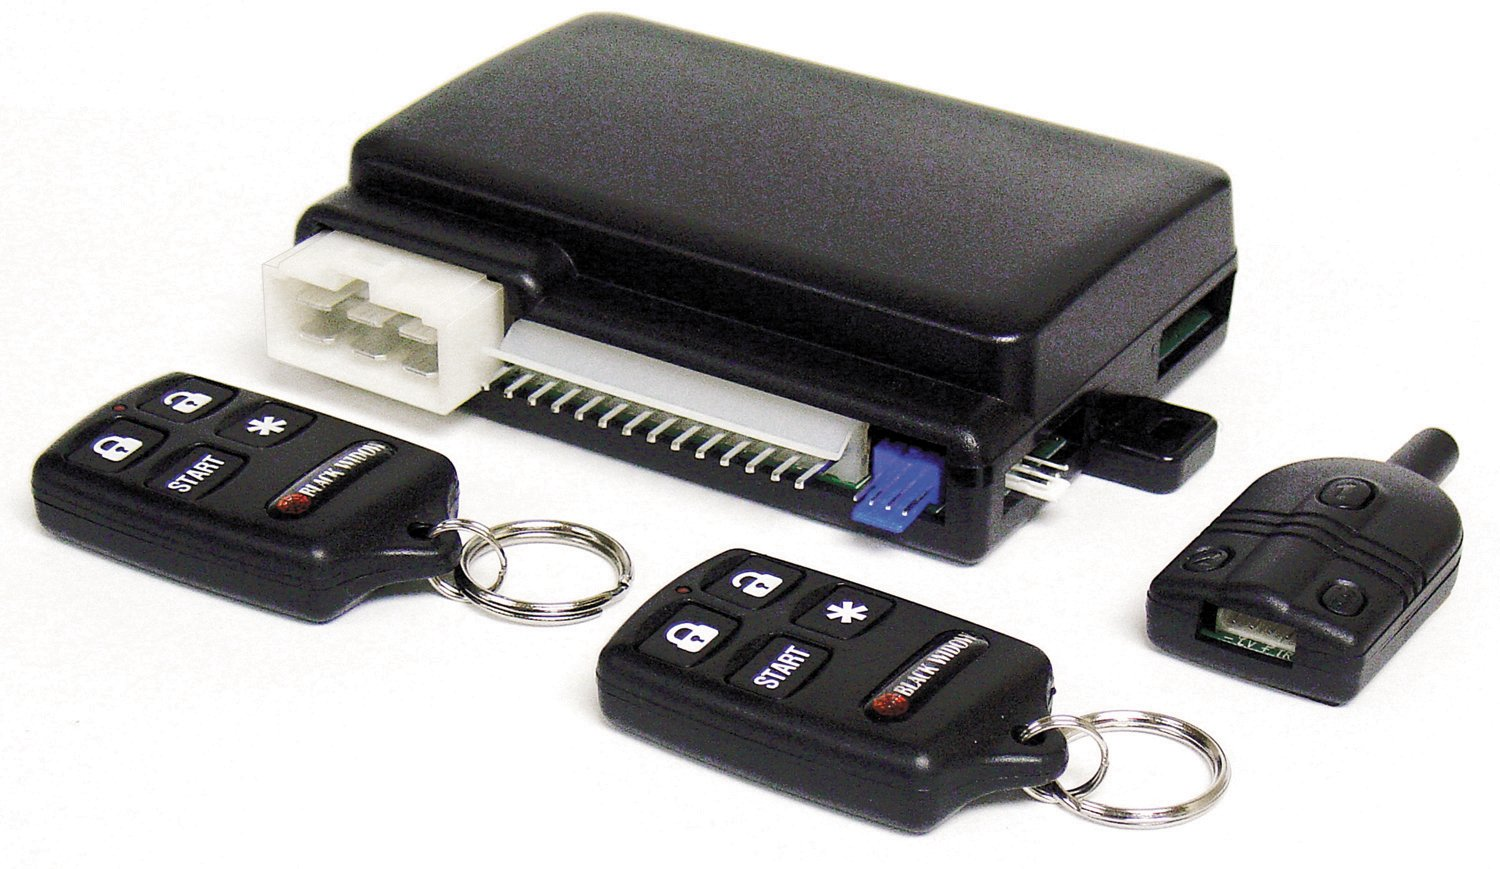 Amazon.com: Black Widow BWRAS651 Vehicle Remote Start System with ...